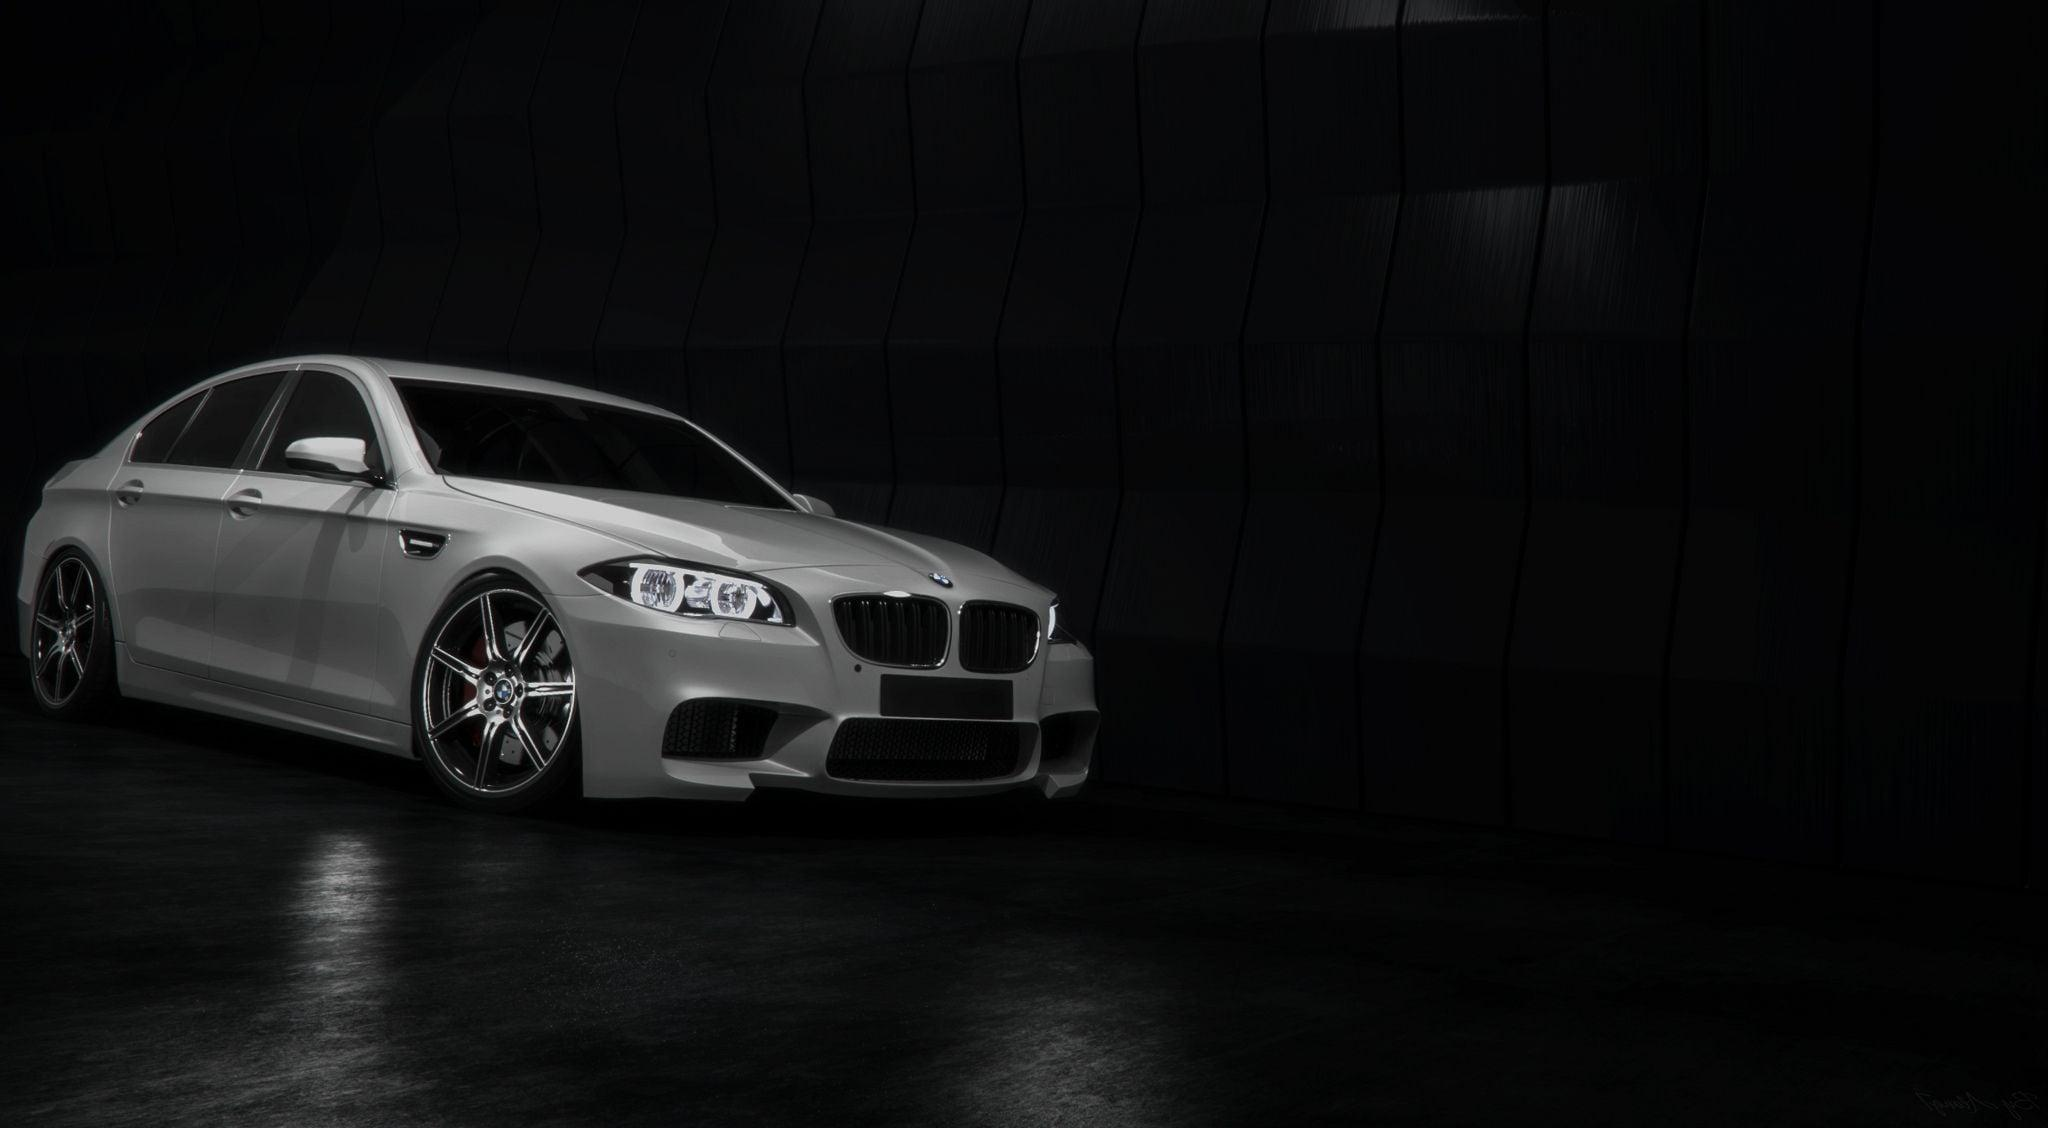 36+ BMW M5 F10 wallpapers HD High Quality Download